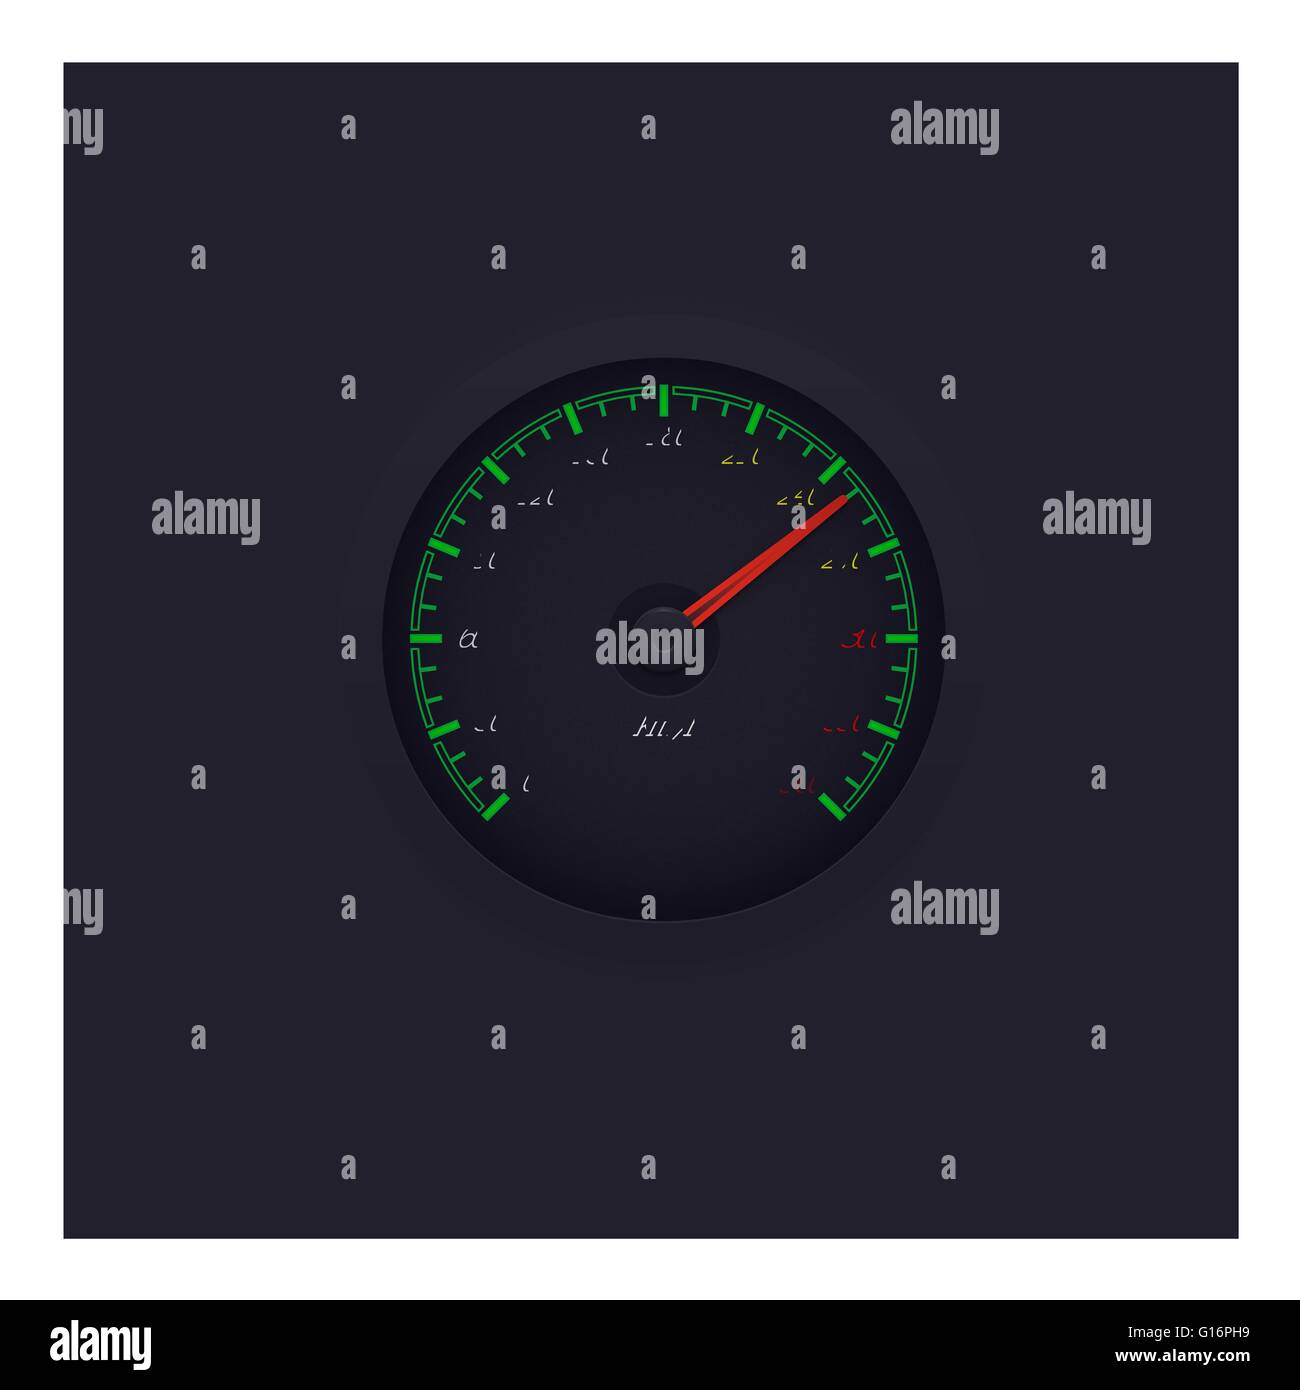 Speed meter Logo - Stock Image